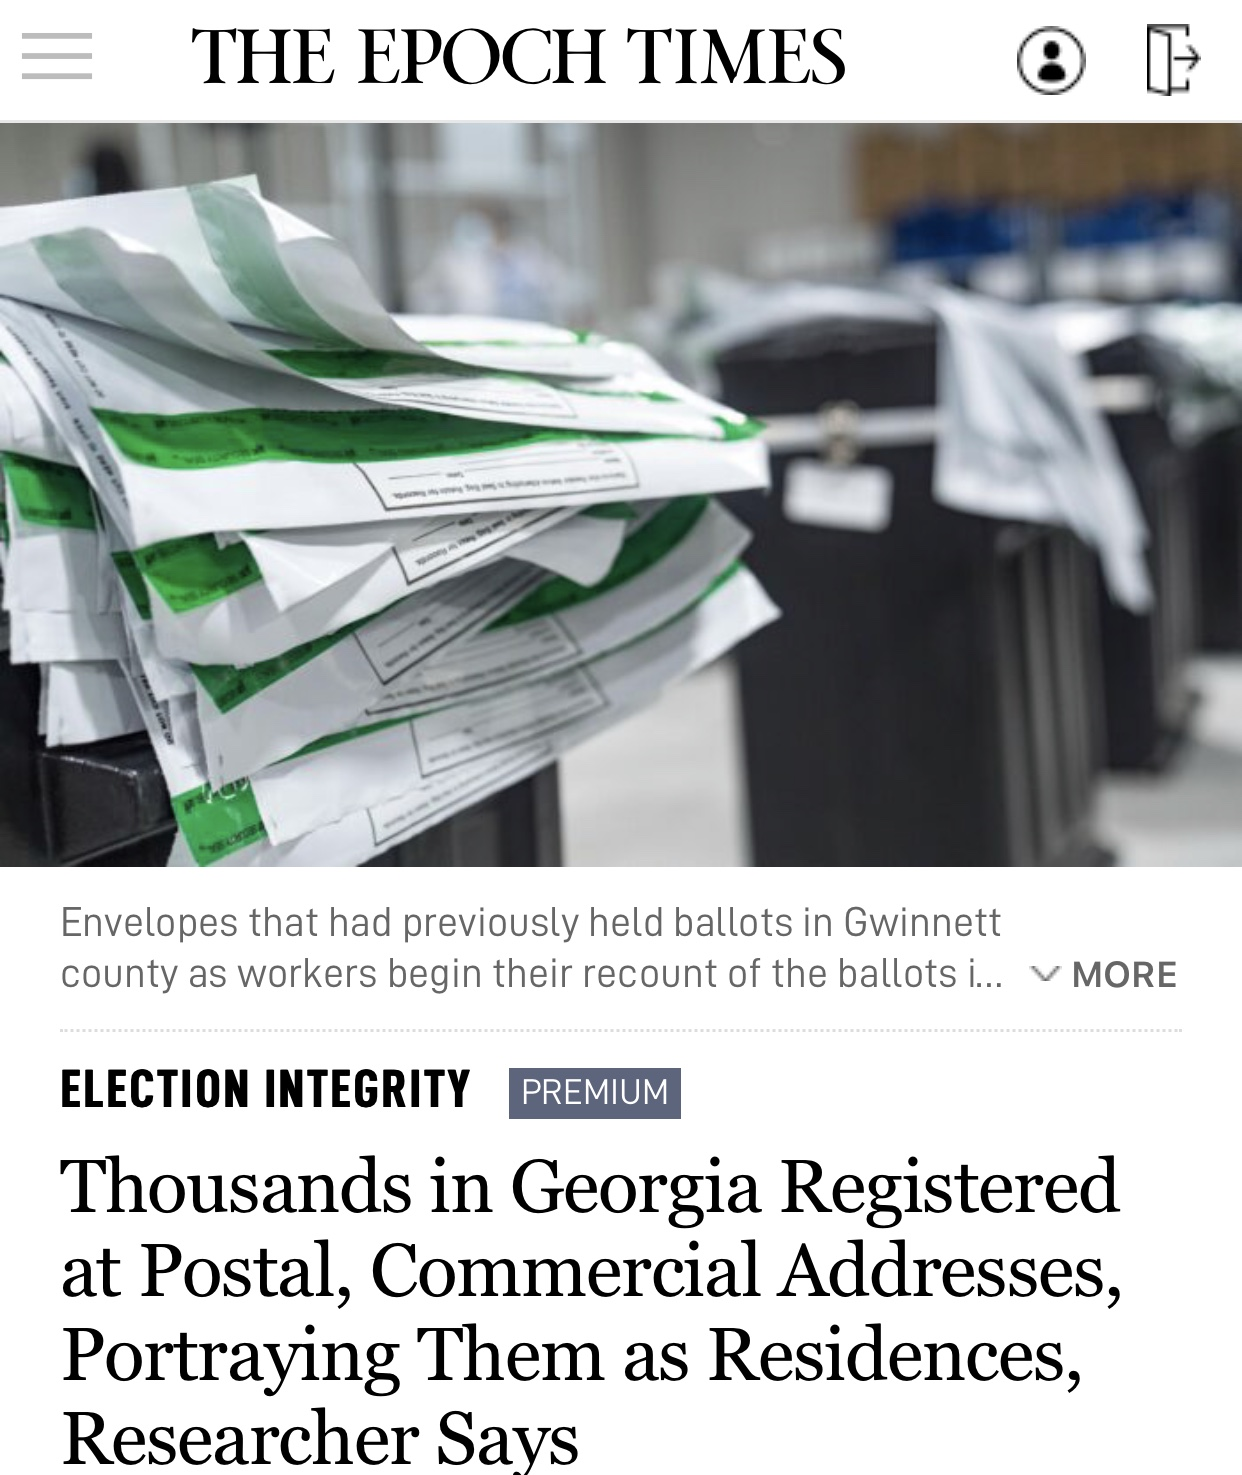 Thousands in Georgia Registered at Postal, Commercial Addresses, Portraying Them as Residences, Researcher Says